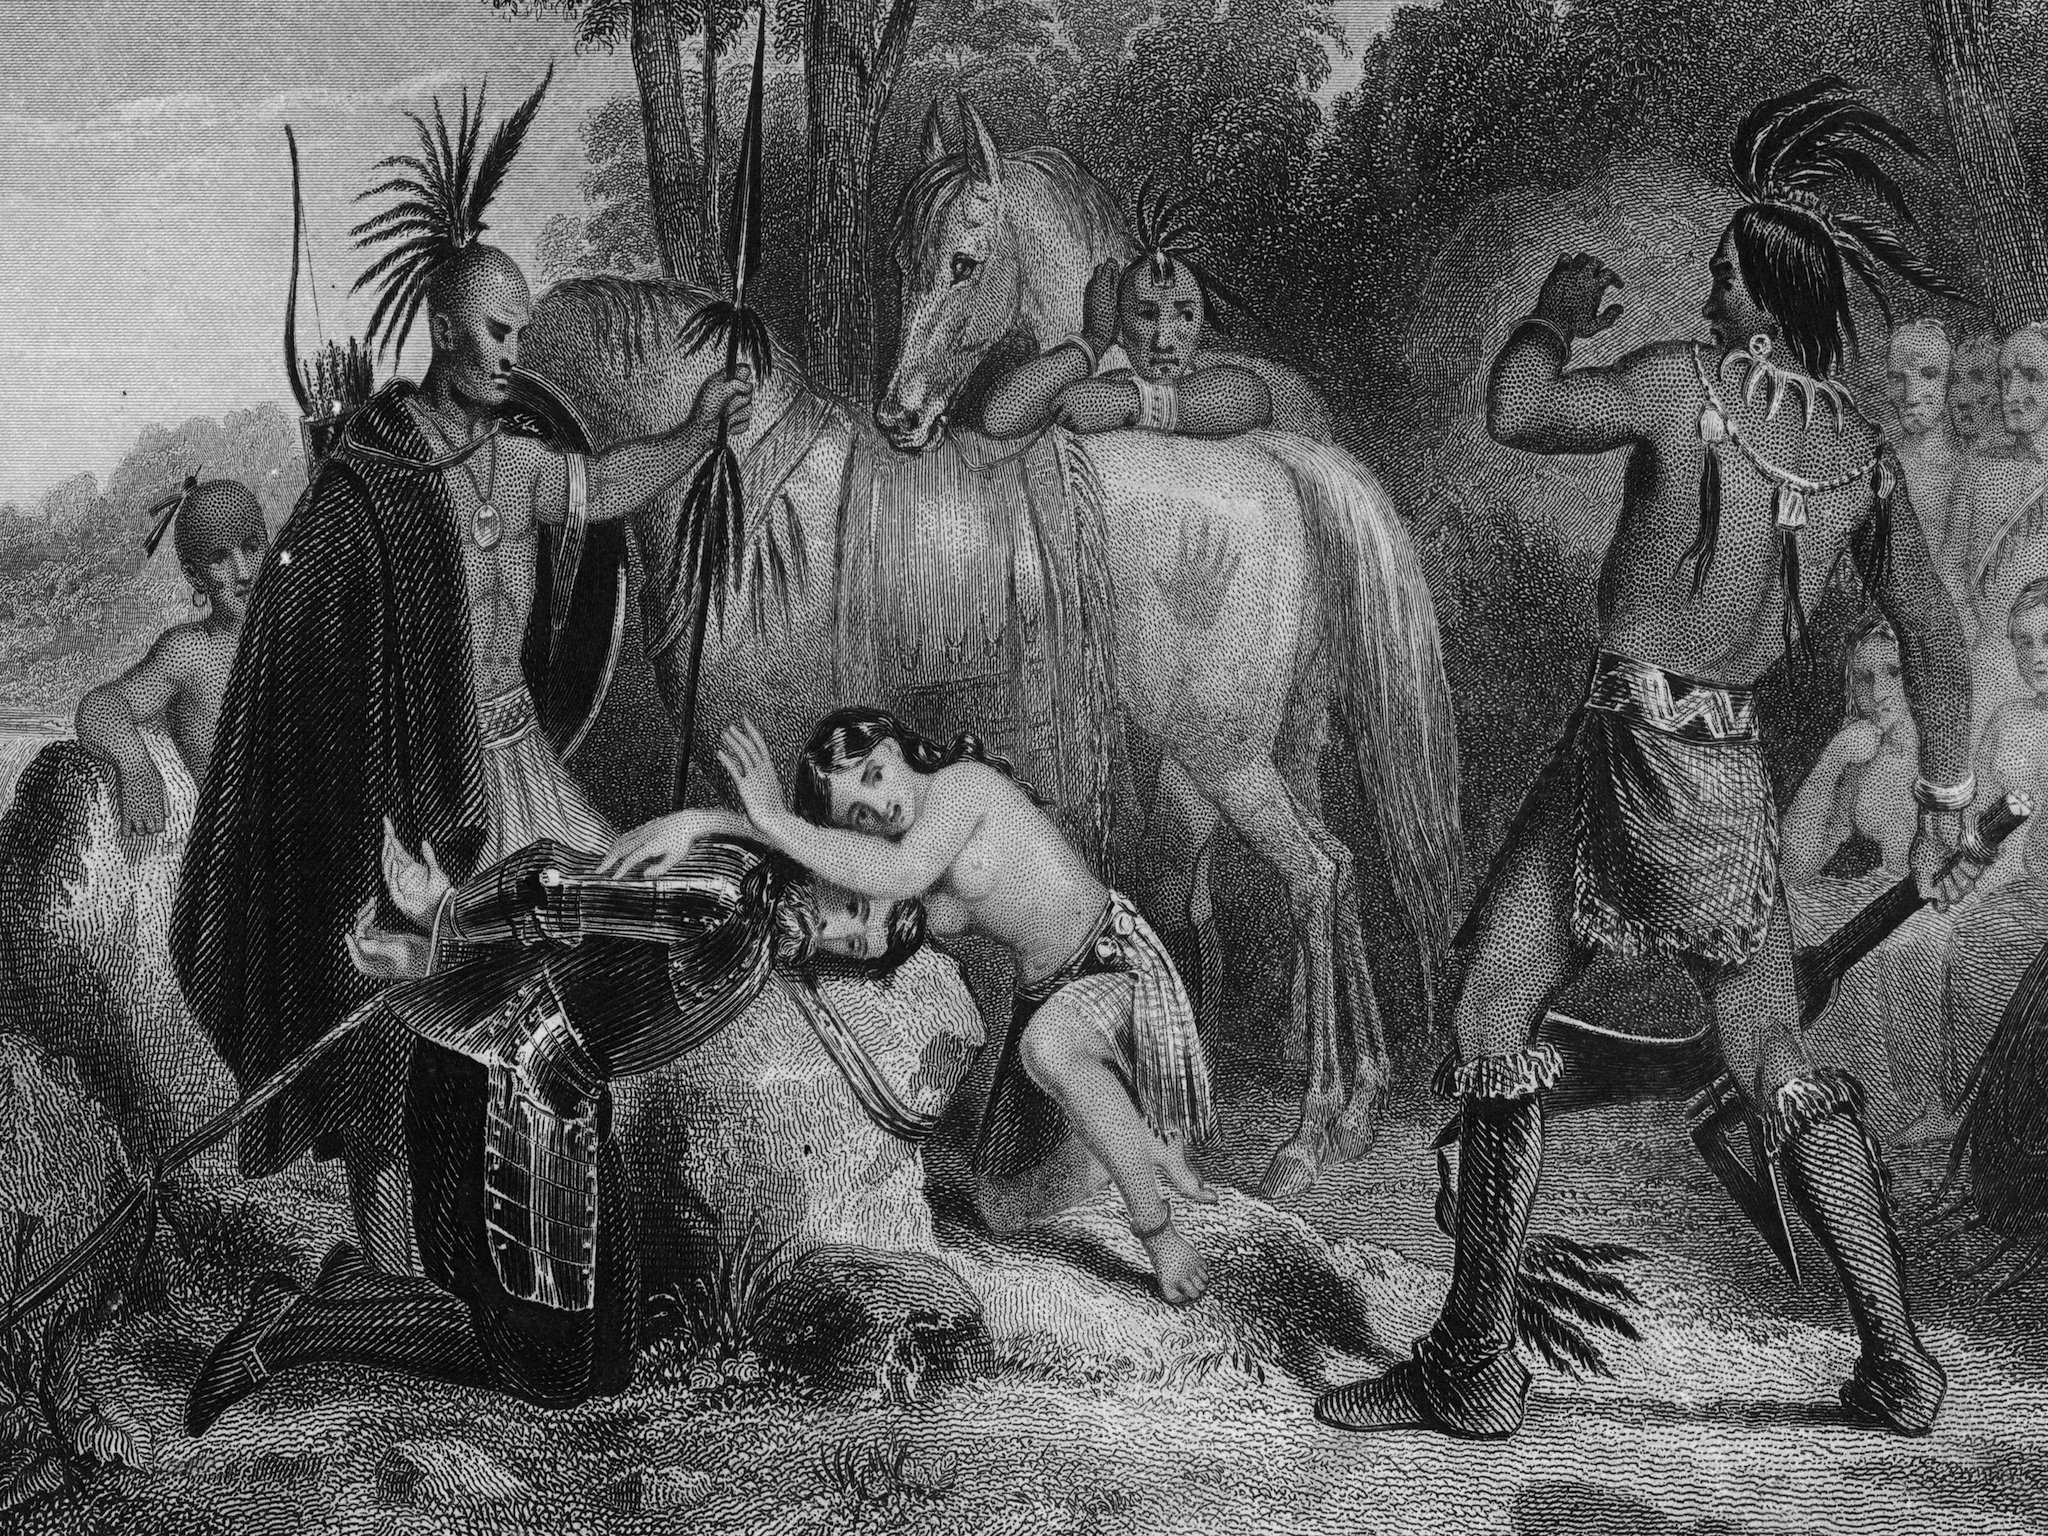 Pocahontas sauvant la vie de John Smith, vers 1607. © Hulton Archive/Getty Images